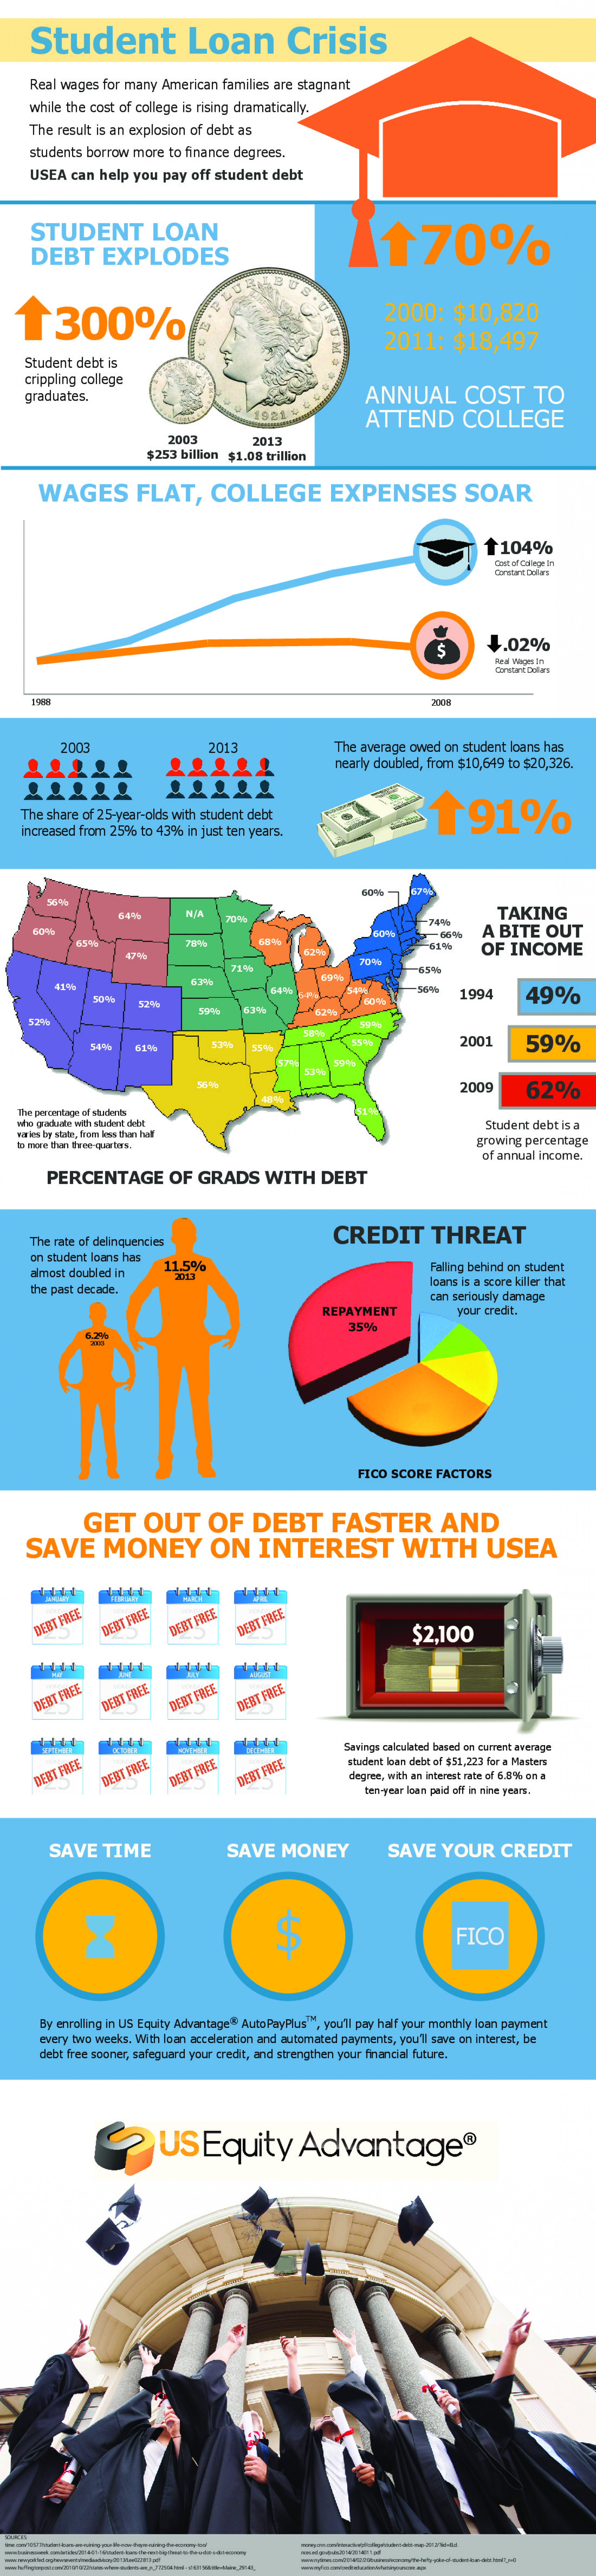 Student Loan Crisis Infographic